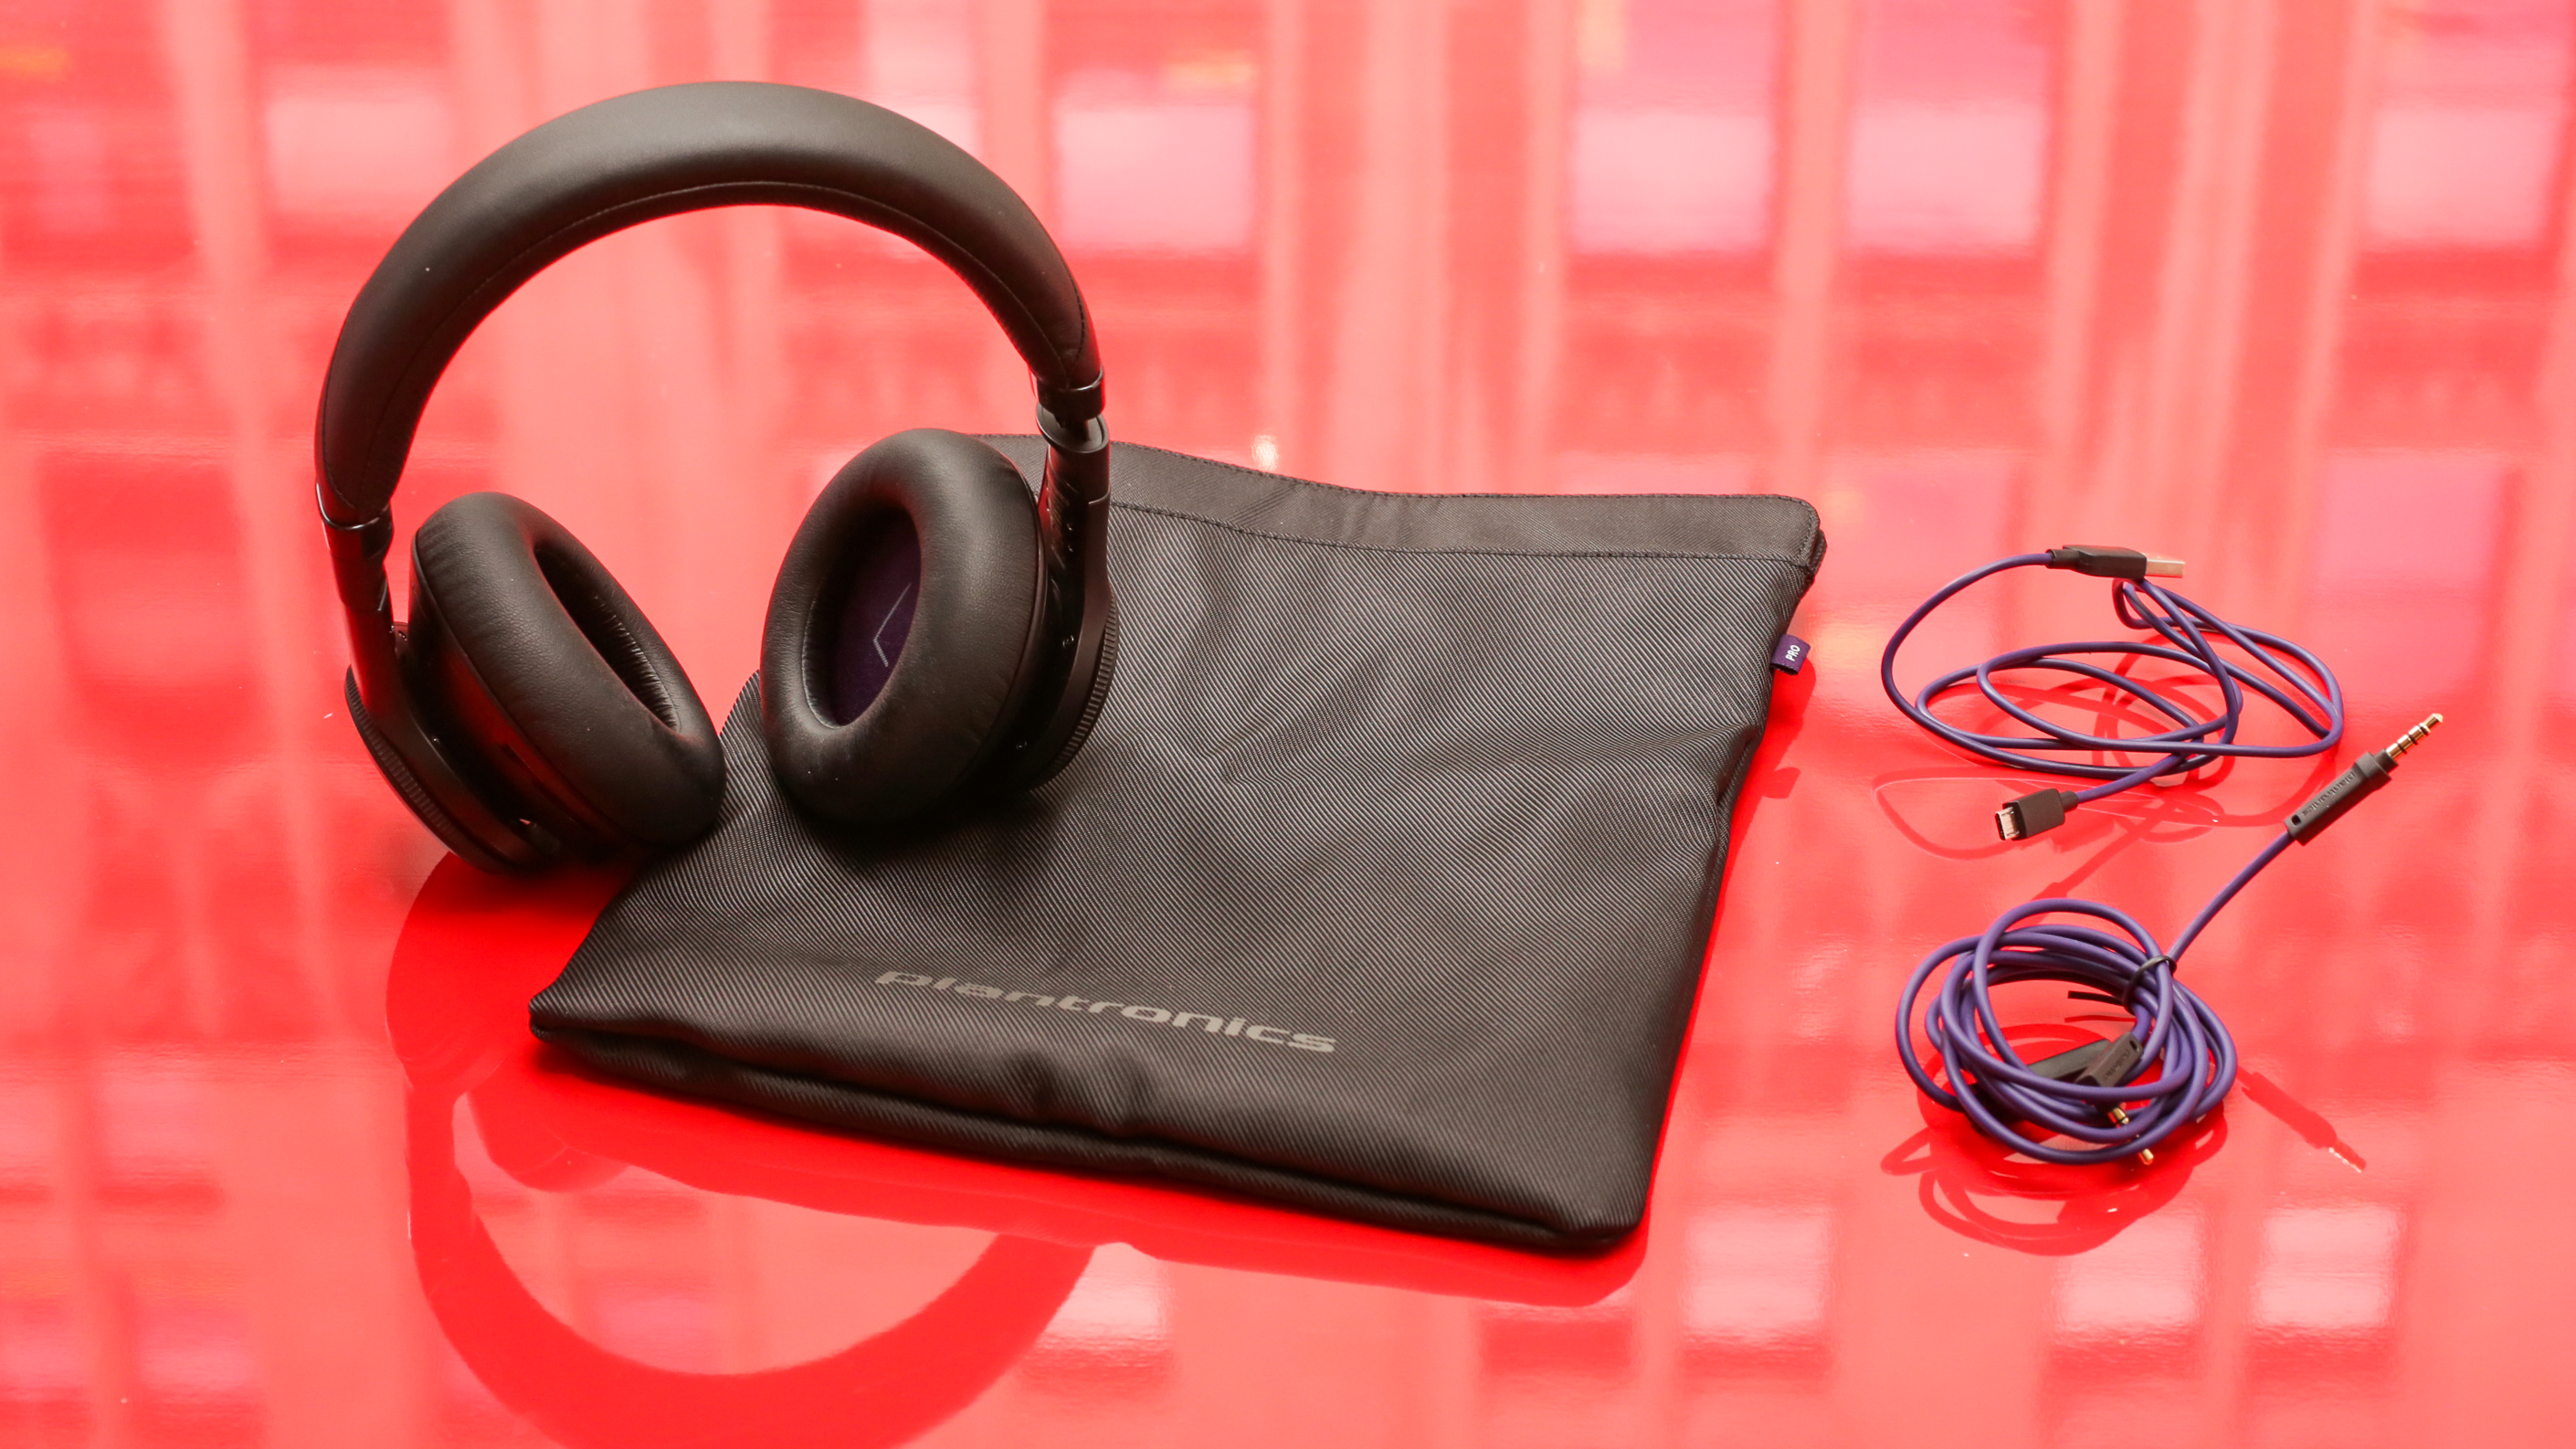 plantronics-backbeat-pro-product-photos13.jpg